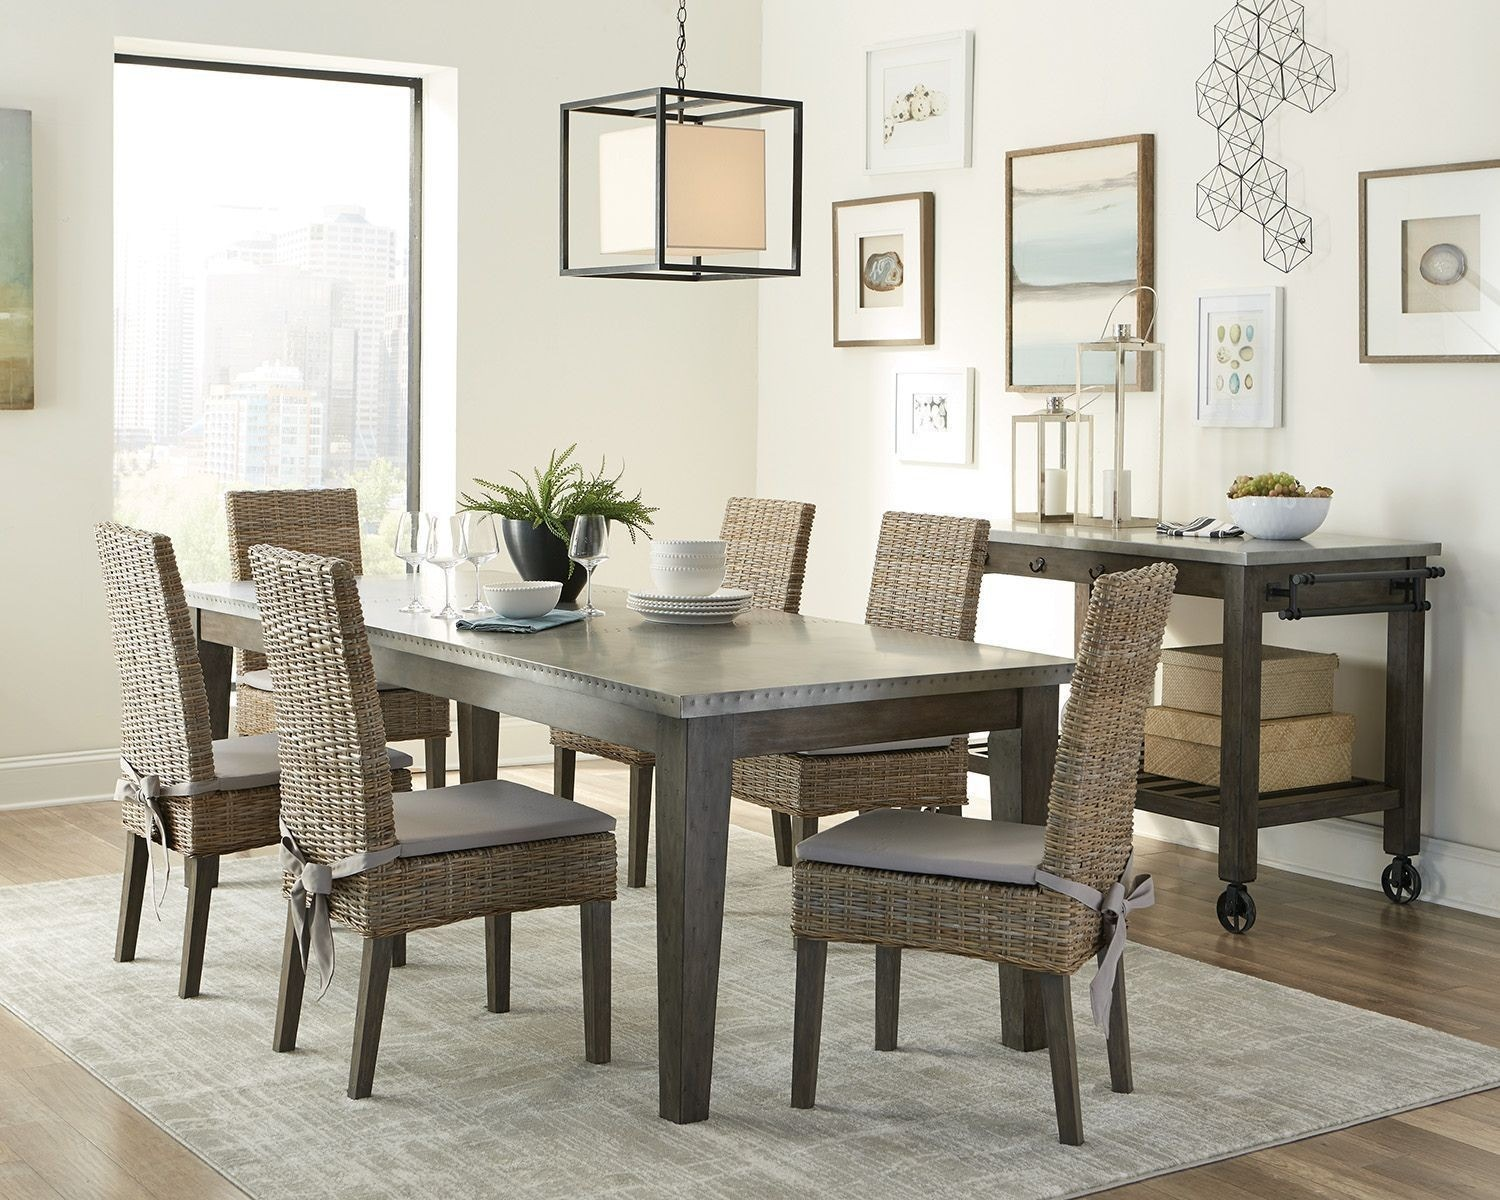 Coaster Dining Set 107941/103803